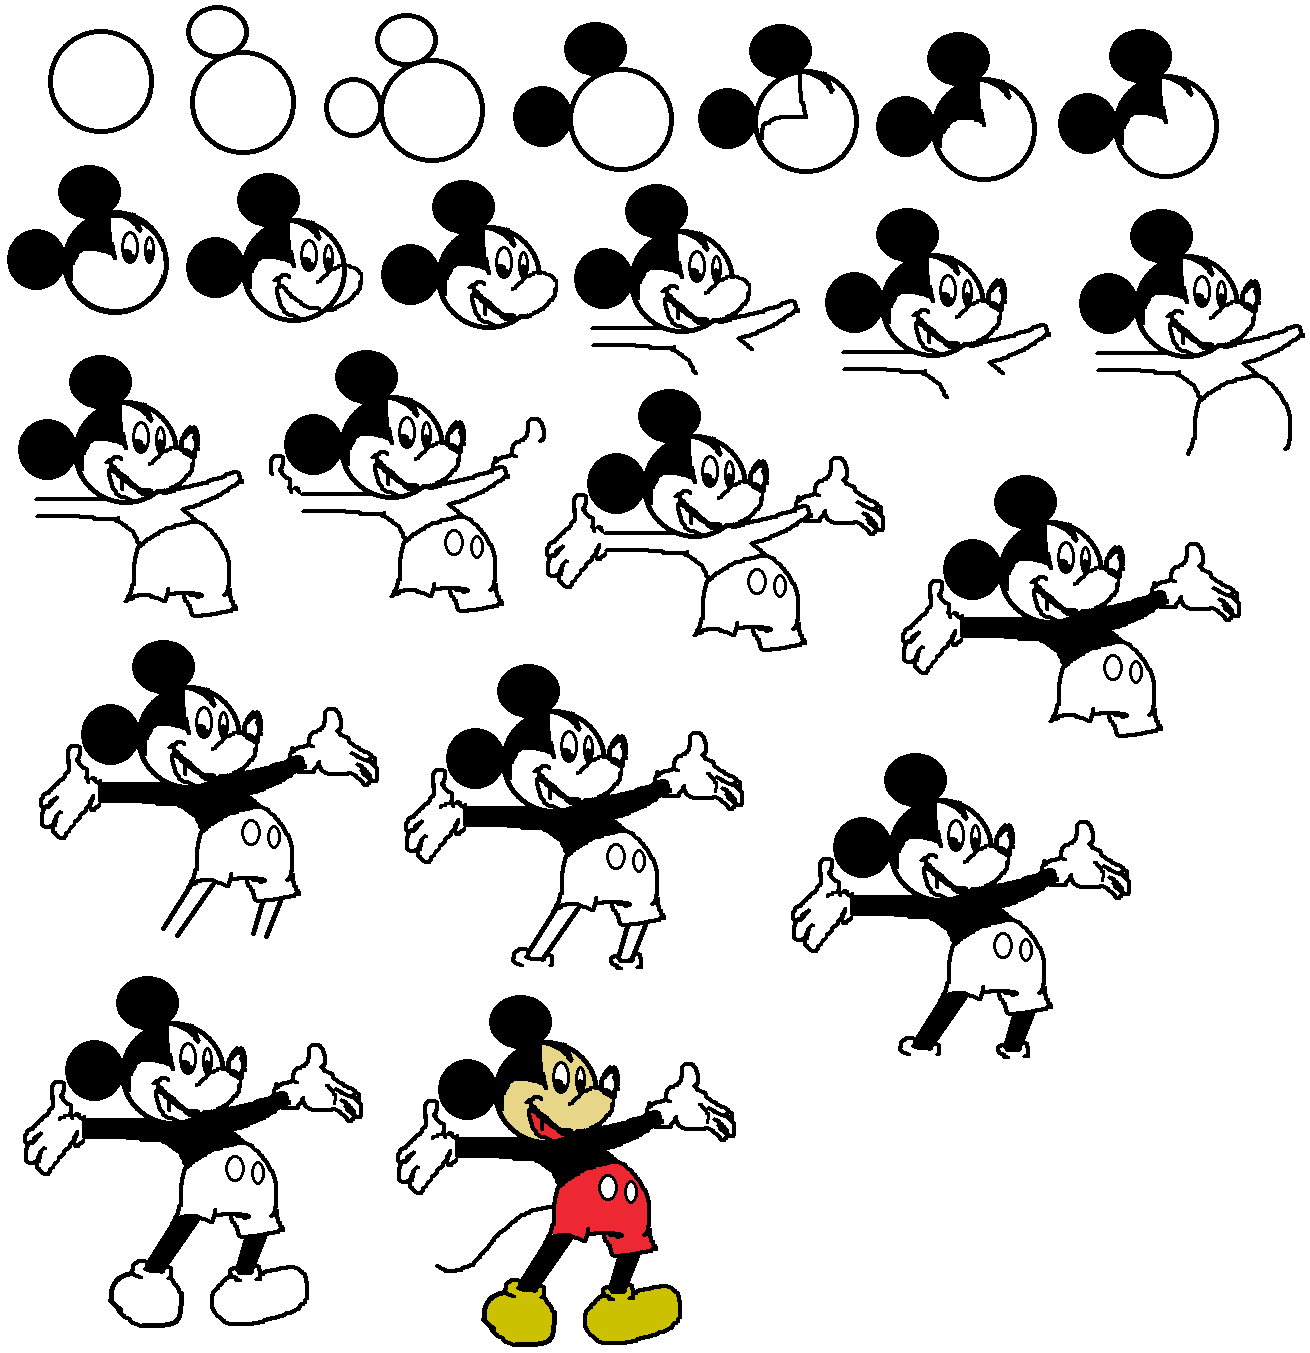 disney characters to draw step by step how to draw cartoon characters step by step step by step by step draw to step characters disney